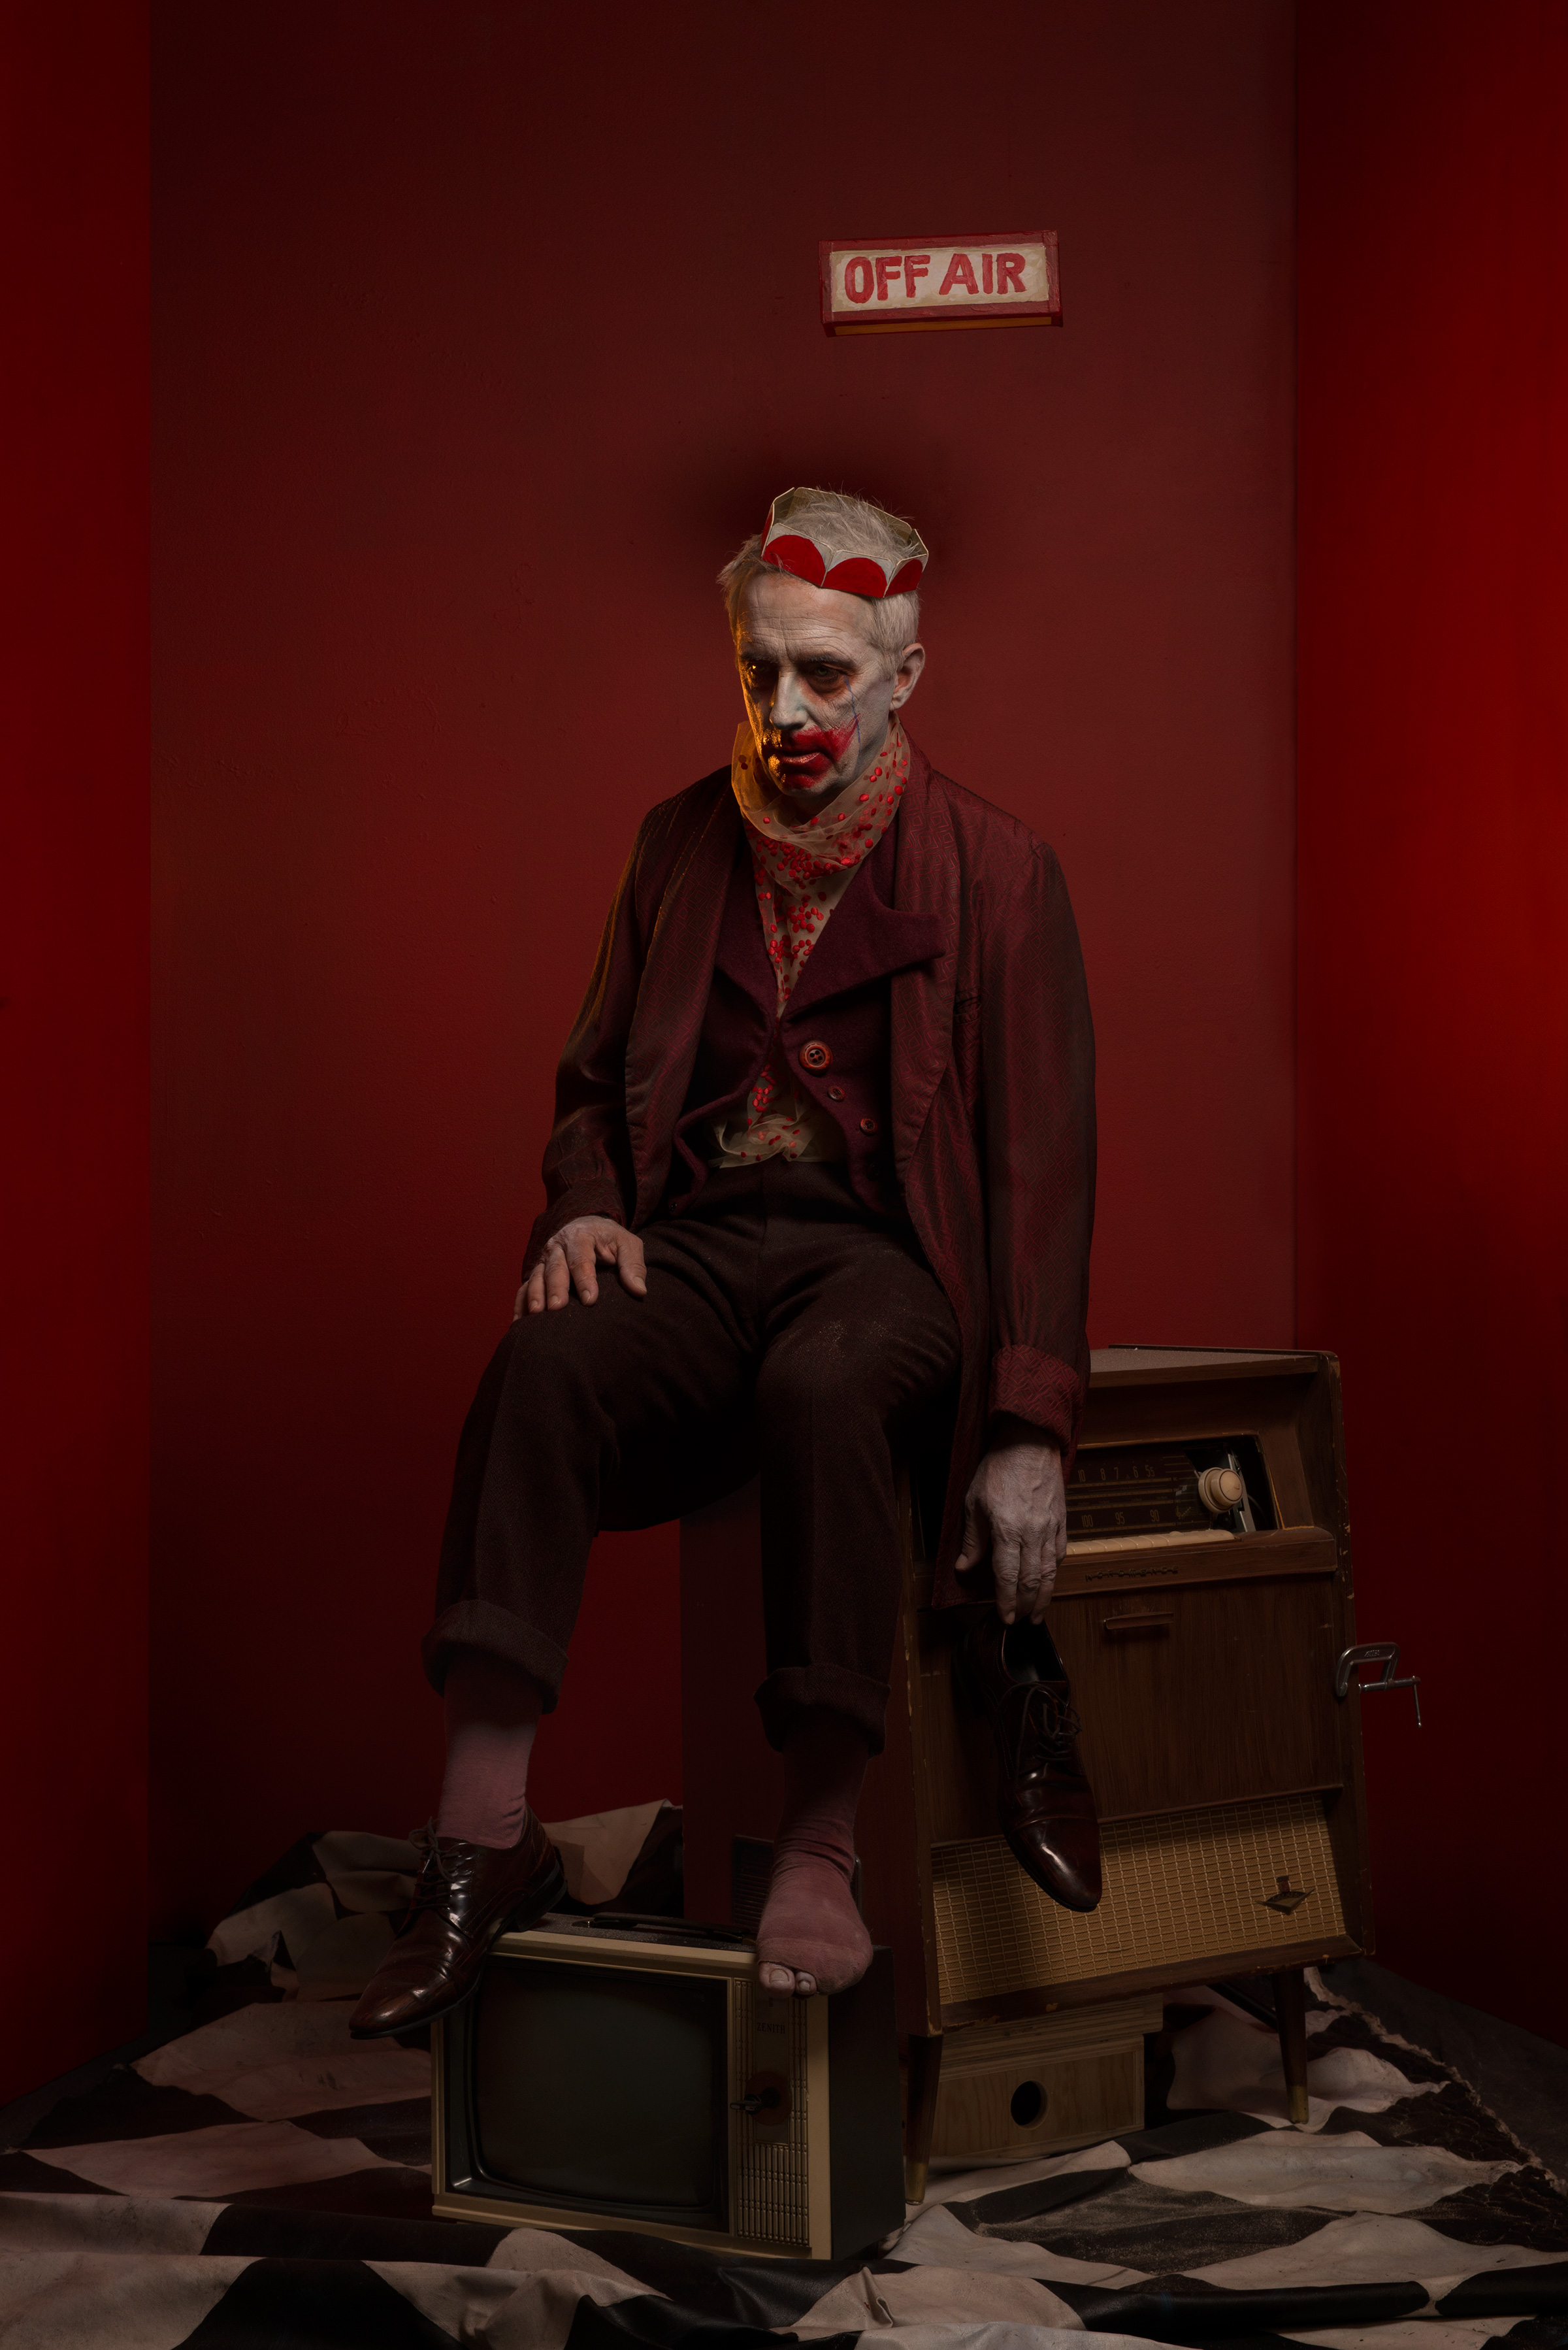 Jean Mongeau for Le BEC campaign. Agency KBS. Zeta Production. Costume: Sophia Graziani. Make-up, set design and photo Damian Siqueiros. Many thanks to Radio Canada and to Jean Mongeau for their generosity.